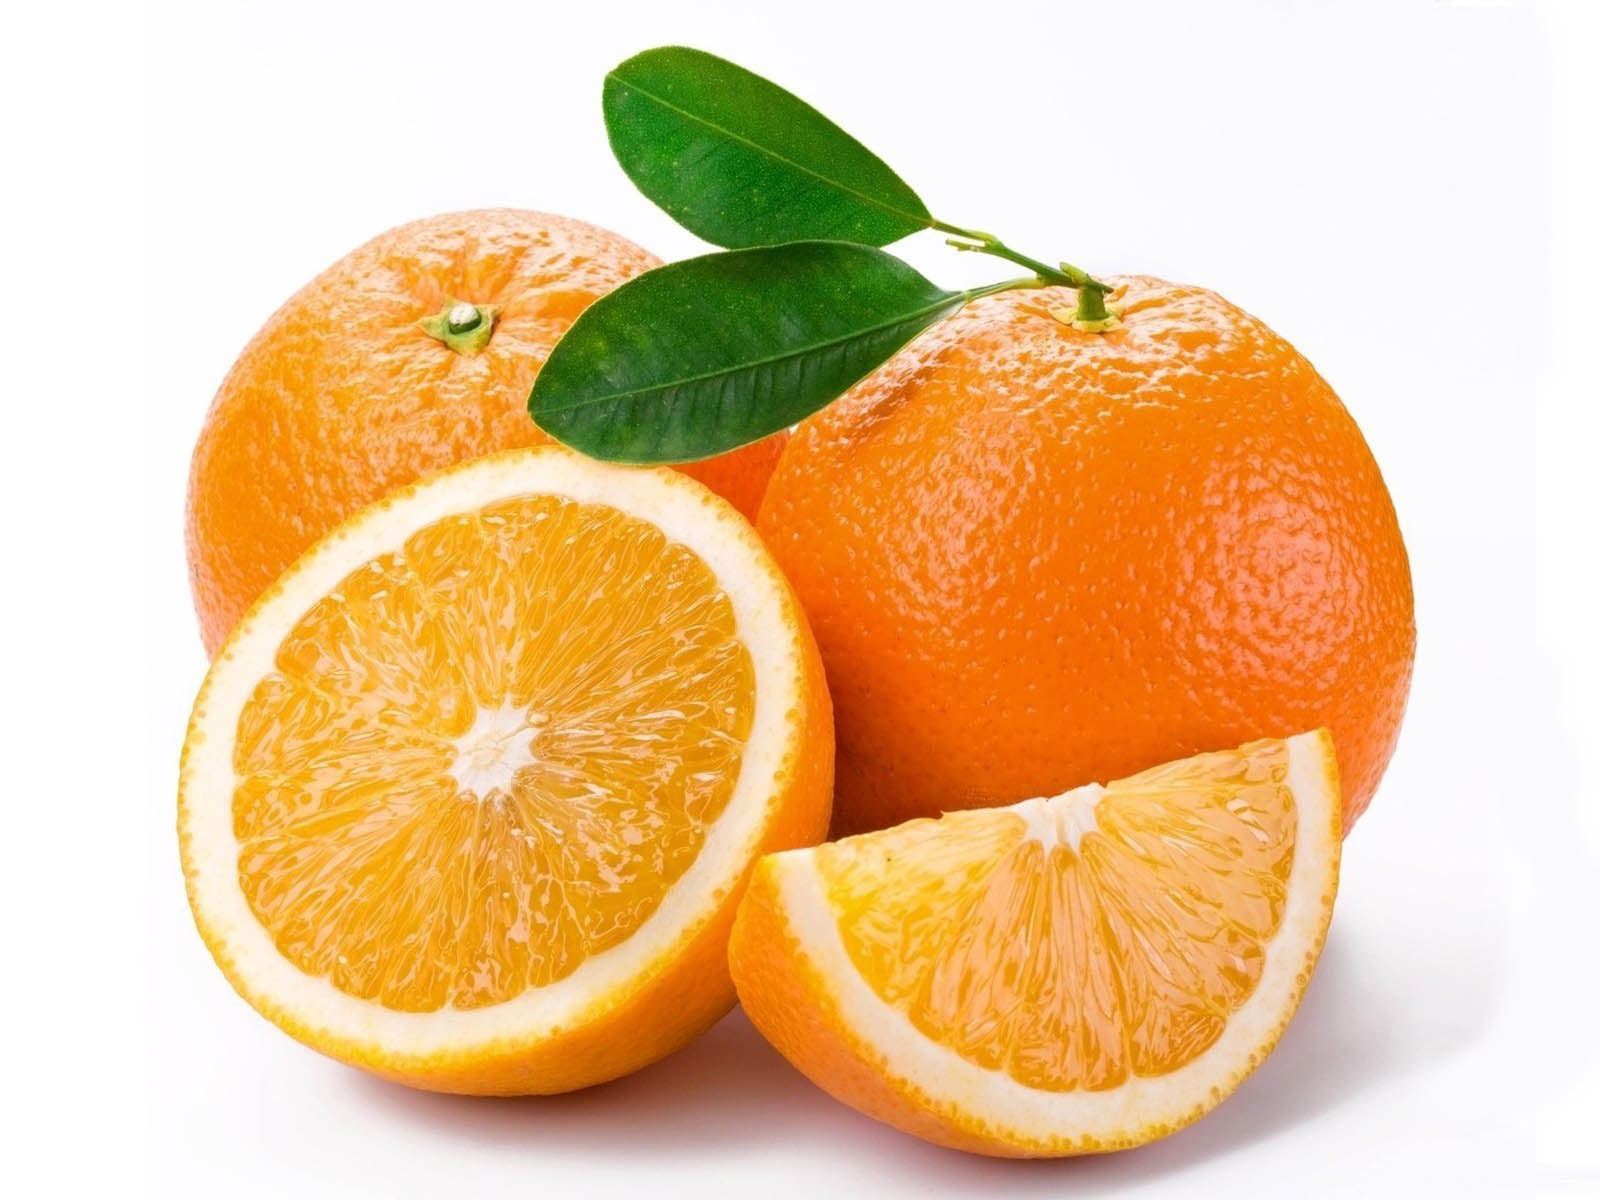 http://3.bp.blogspot.com/-tVoQ9O2IU_E/UDzWrWgr2TI/AAAAAAAAIZ8/ojl3vvQ-XV8/s1600/Orange+Fruits+Wallpapers+1.jpg